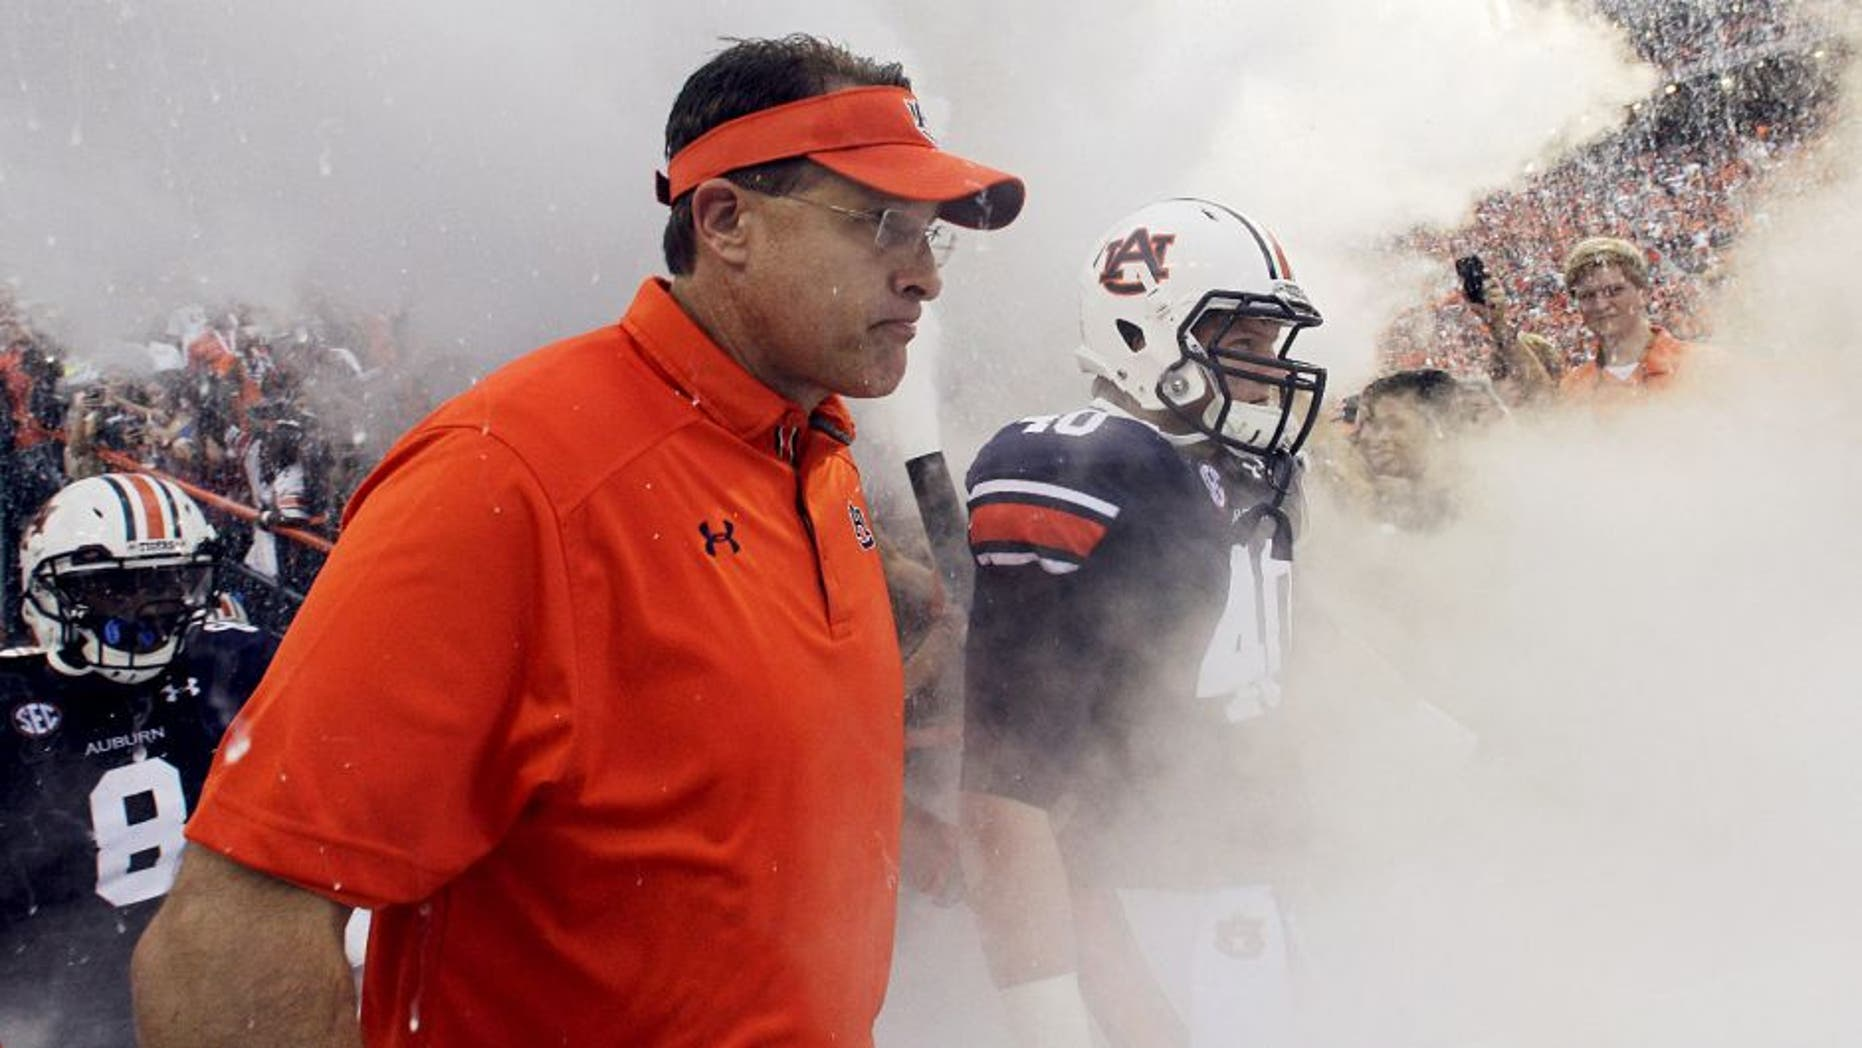 Aug 31, 2013; Auburn, AL, USA; Auburn Tigers head coach Gus Malzahn and his team enter the field at Jordan Hare Stadium for the game against the Washington State Cougars. The Tigers beat the Cougars 31-24. Mandatory Credit: John Reed-USA TODAY Sports